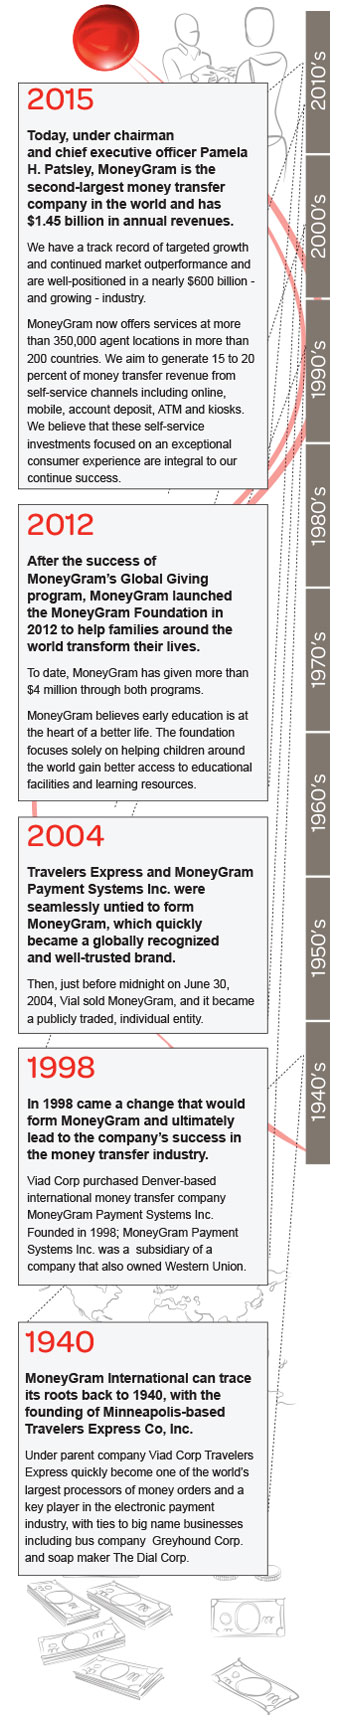 MoneyGram is the second-largest money transfer company in the world and has $1.5 billion in annual revenues. We have a track record of targeted growth and are well-positioned in a nearly $600 billion - and growing - industry. MoneyGram now offers services at more than 350,000 agent locations in more than 200 countries, and has an aggressive expansion plan that includes 15 to 20 percent of revenue from self-service channels including online, mobile, account deposit, ATMs, and kiosks. We believe that self-service investments focused on an exceptional consumer experience are integral to our continued success.